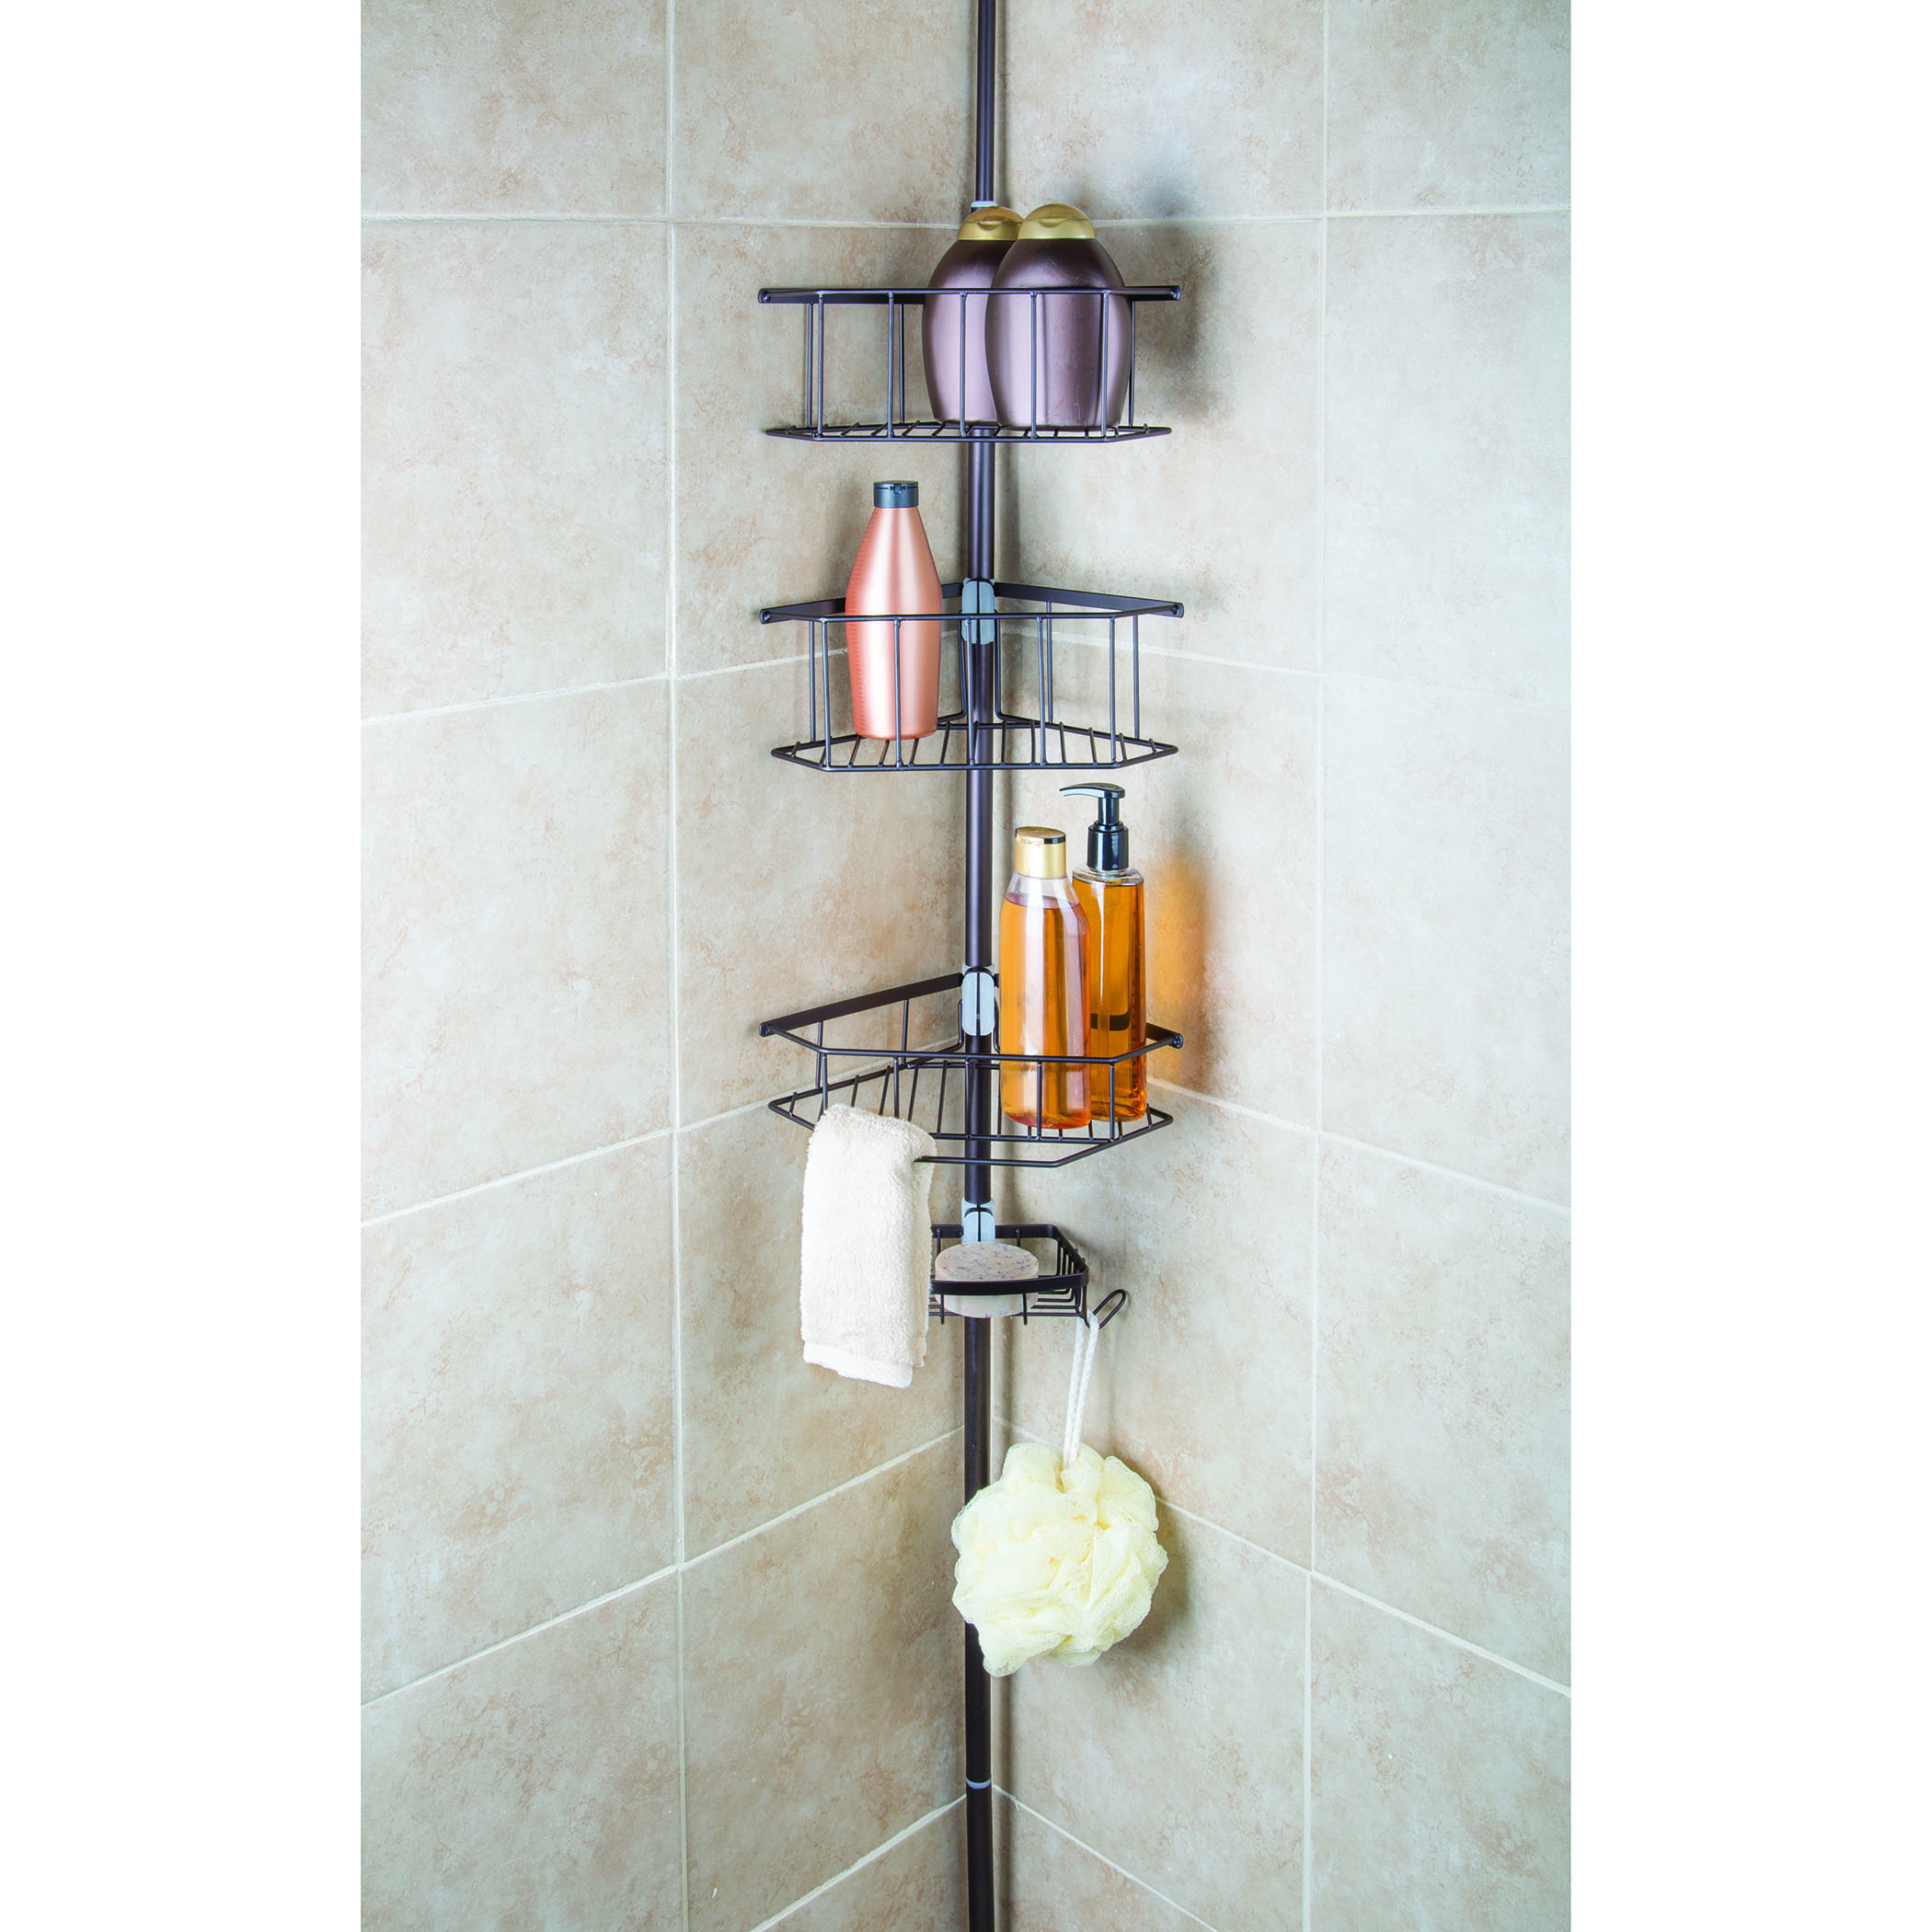 Homecrate Three Tier Corner Tension Pole Shower Caddy 9 Ft Height With Soap Dish Ebay